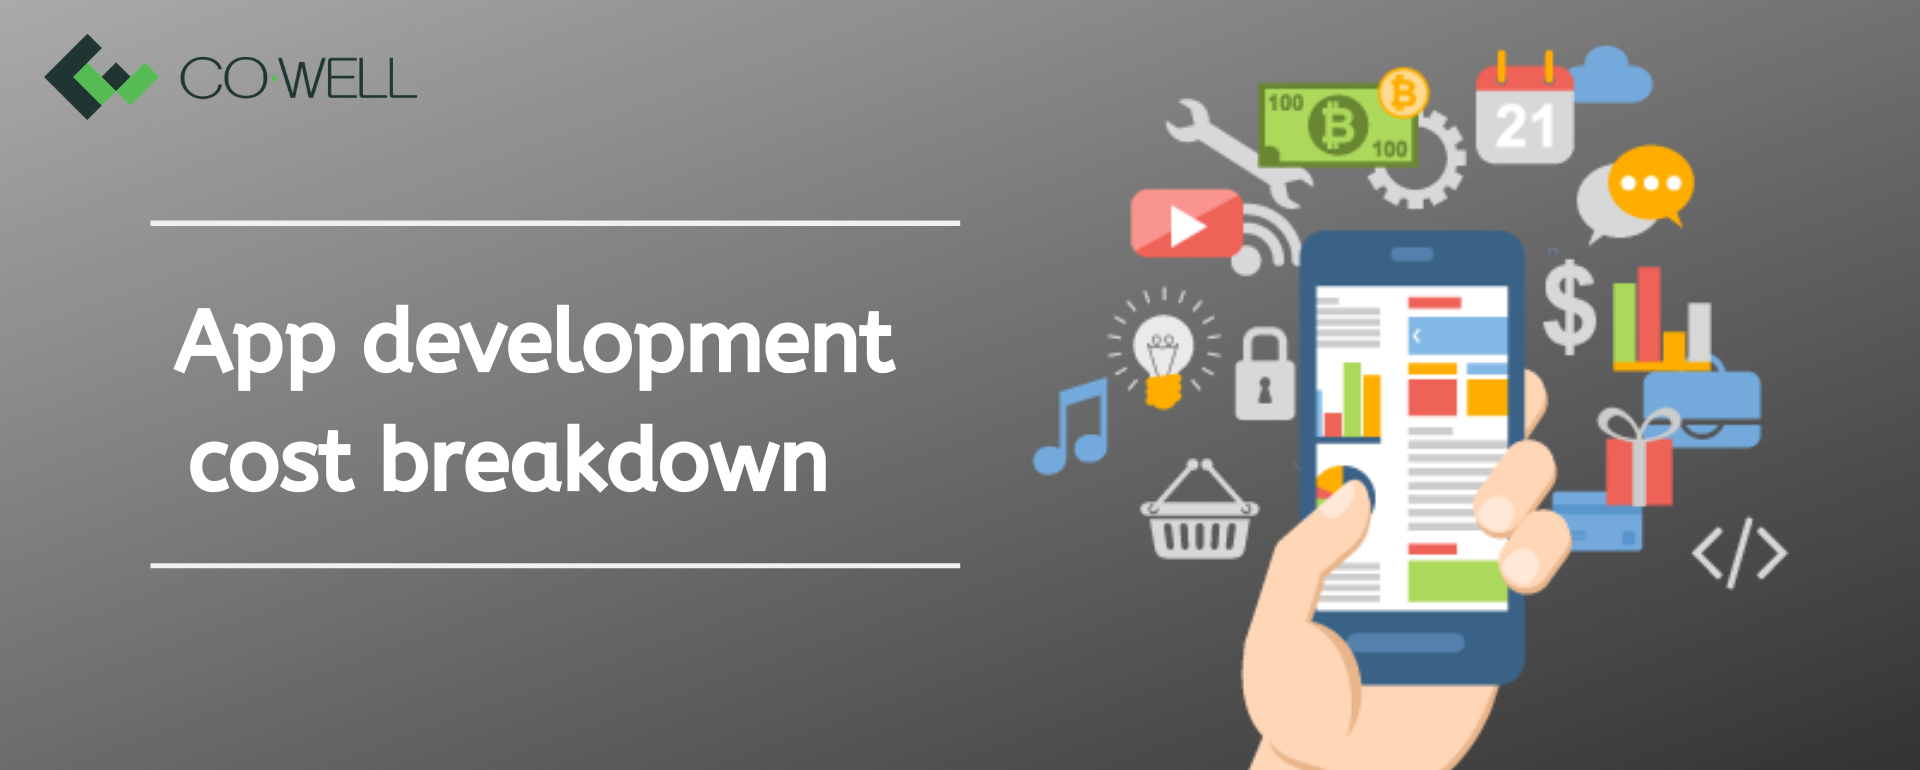 App development cost breakdown 3